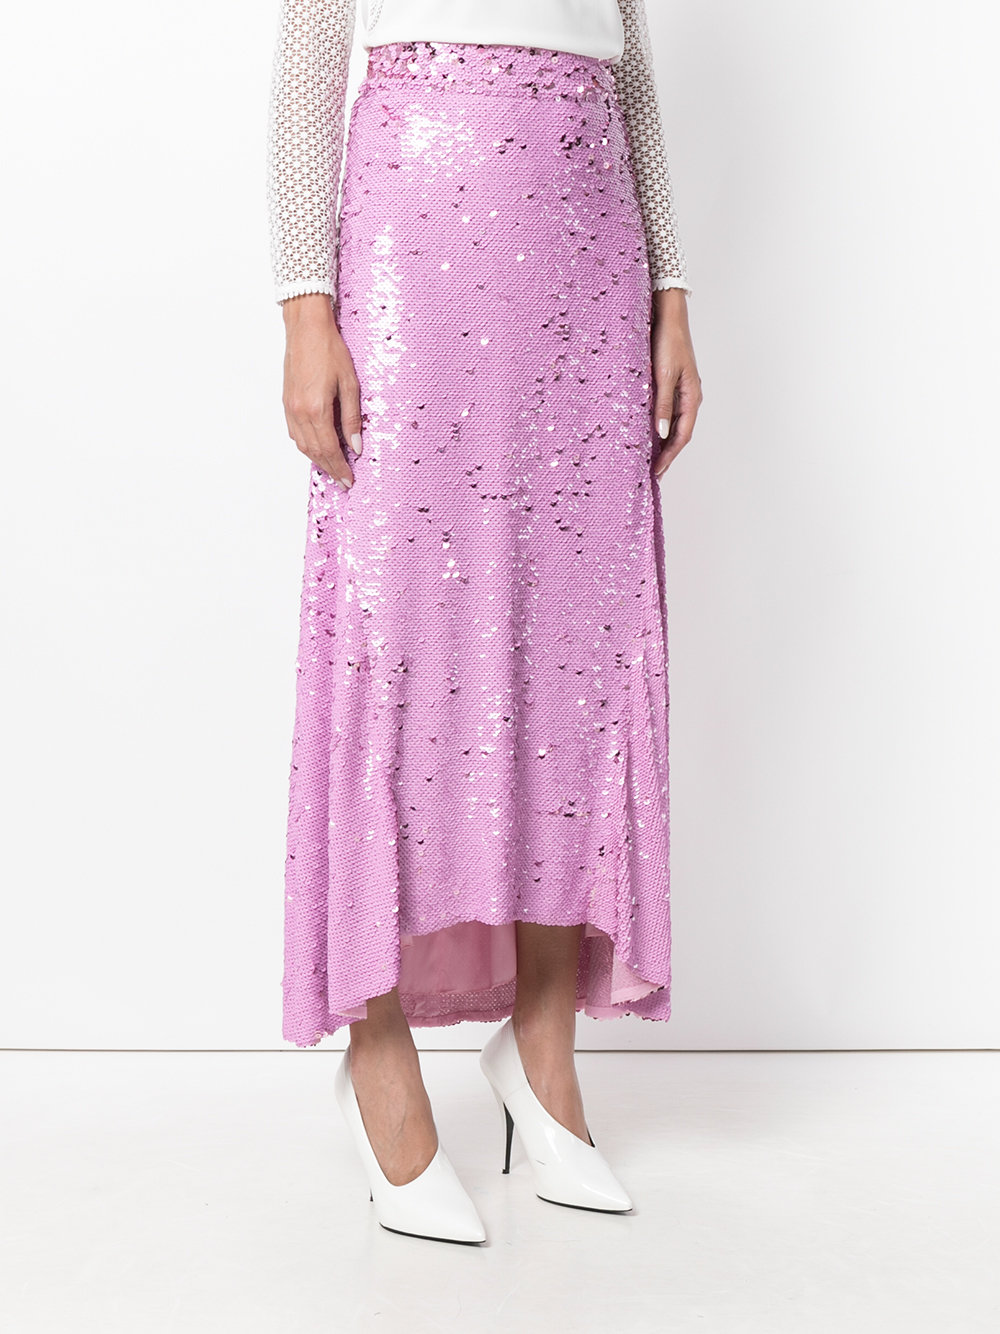 Nina Ricci Draped Sequined Skirt - Farfetch